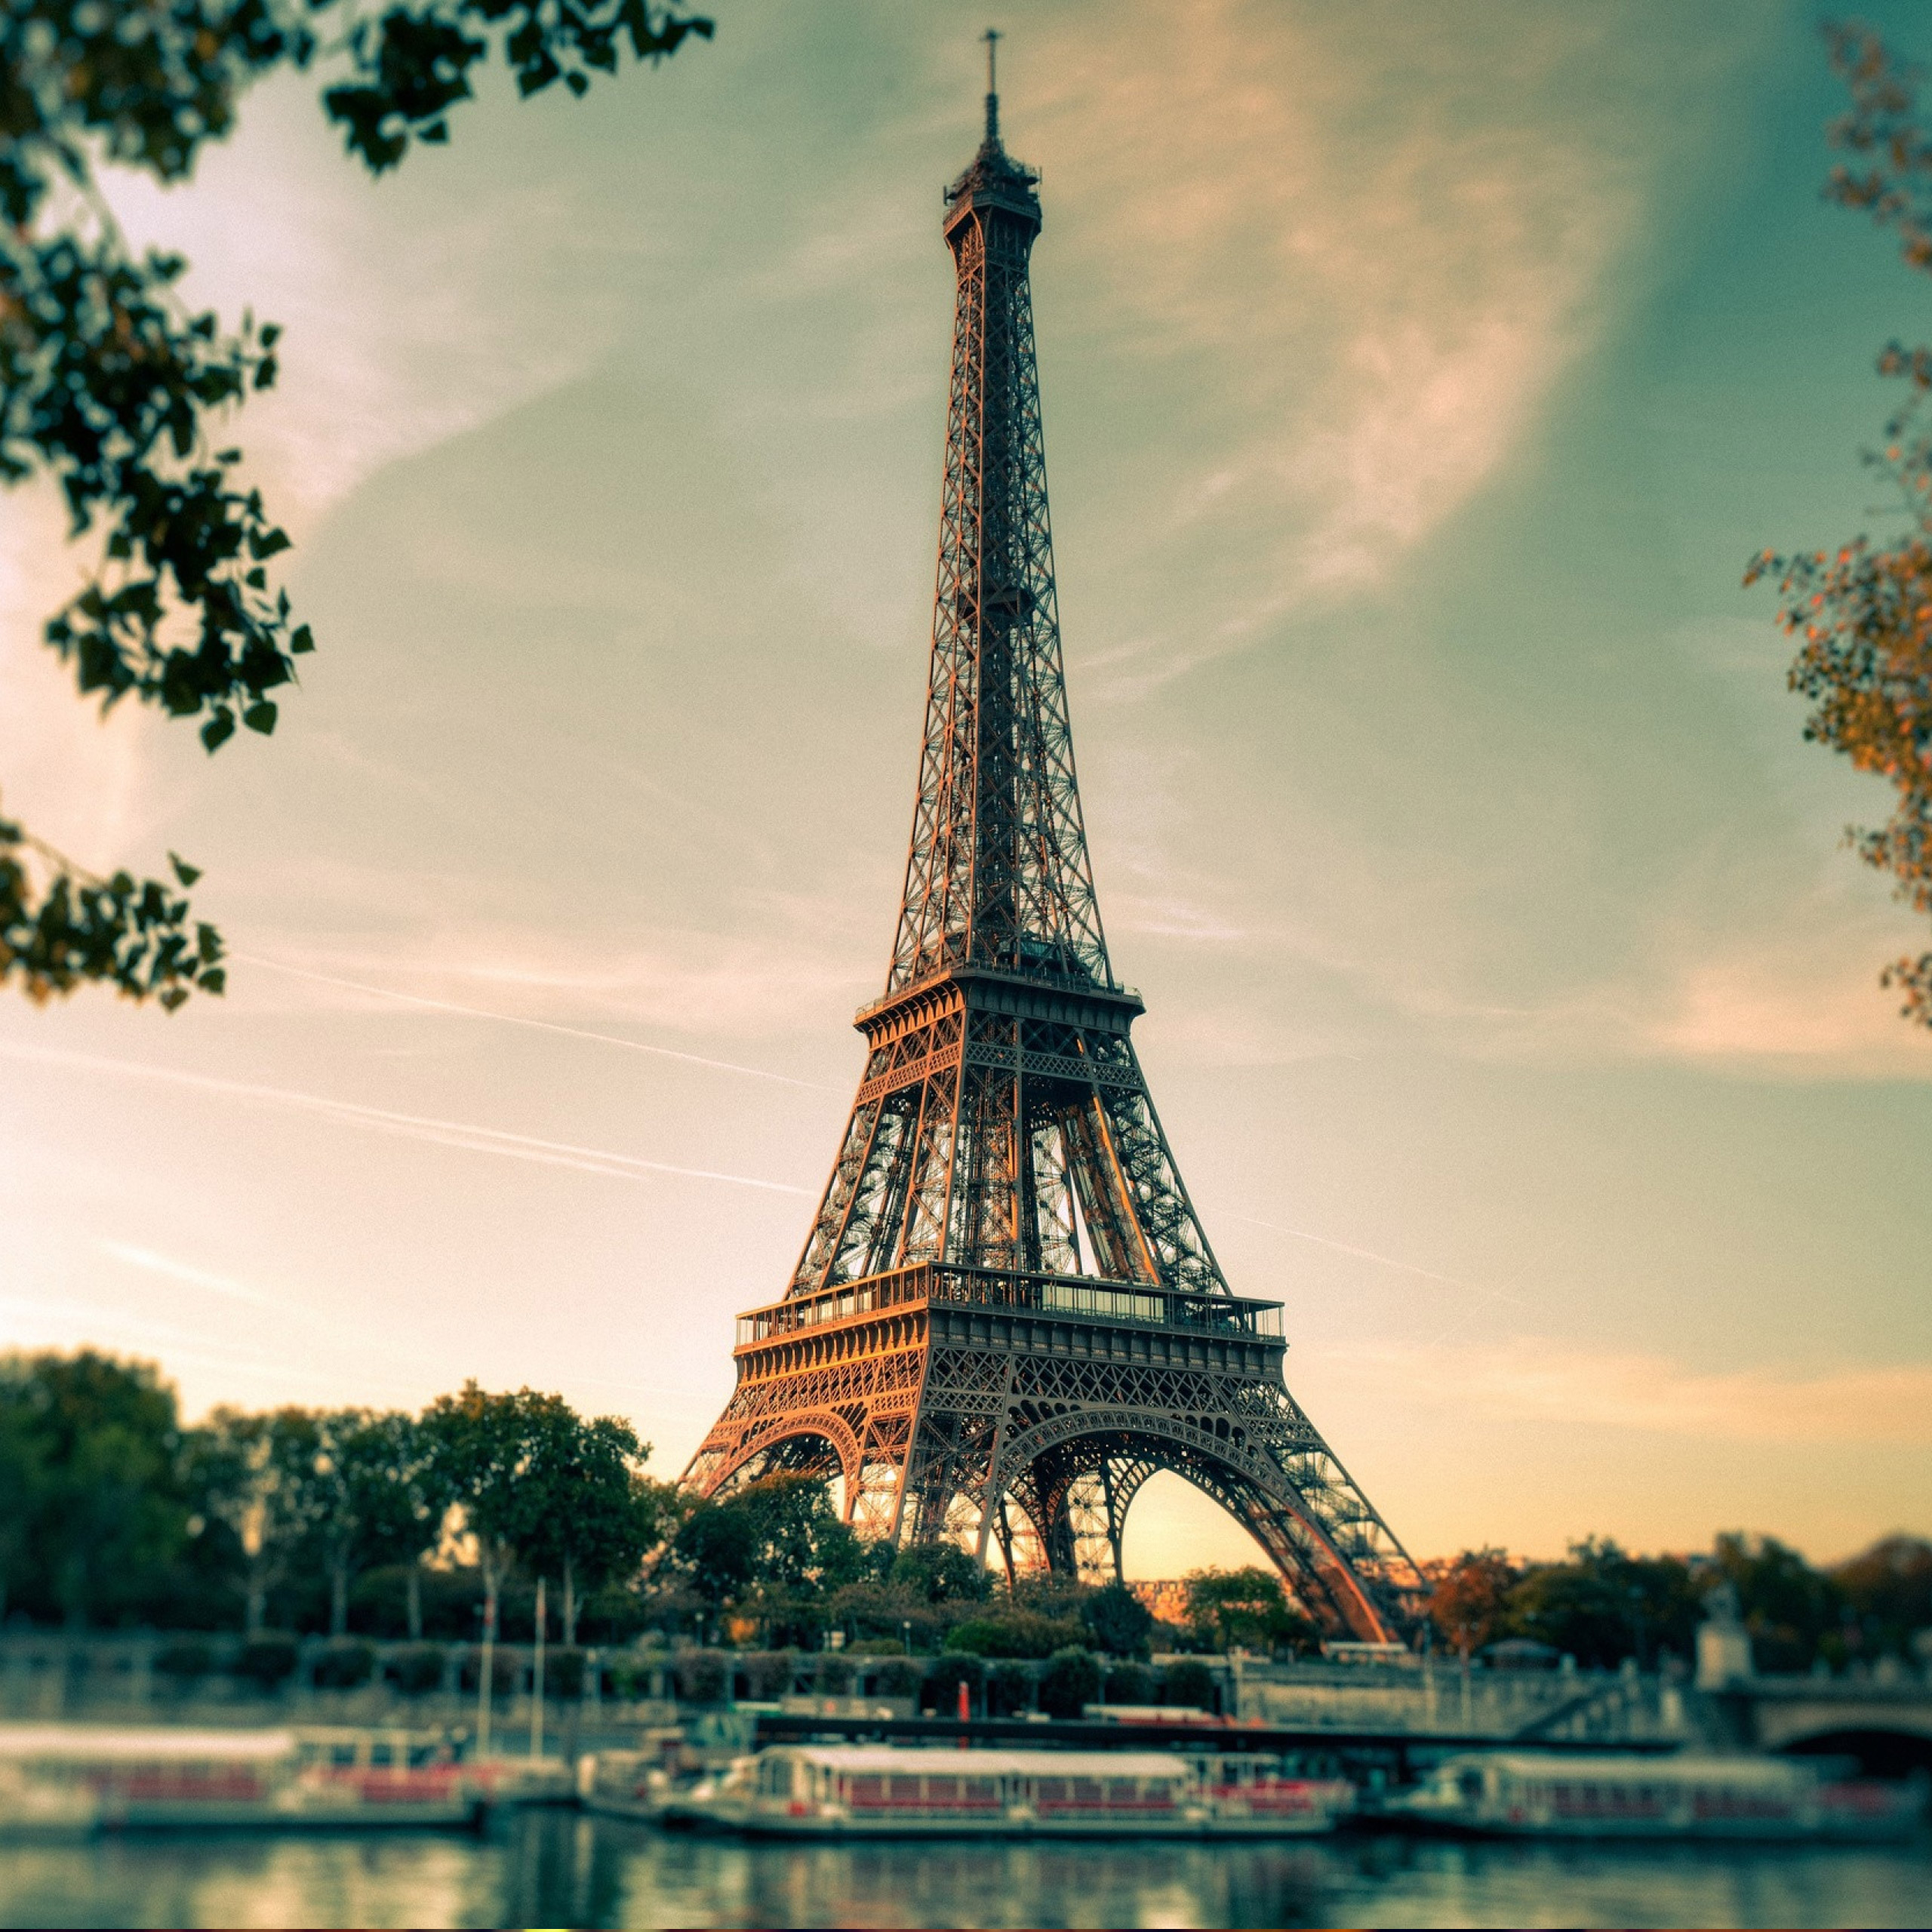 Ipod Wallpaper: Paris France Eiffel Tower Beautiful Amazing Images Full Hd